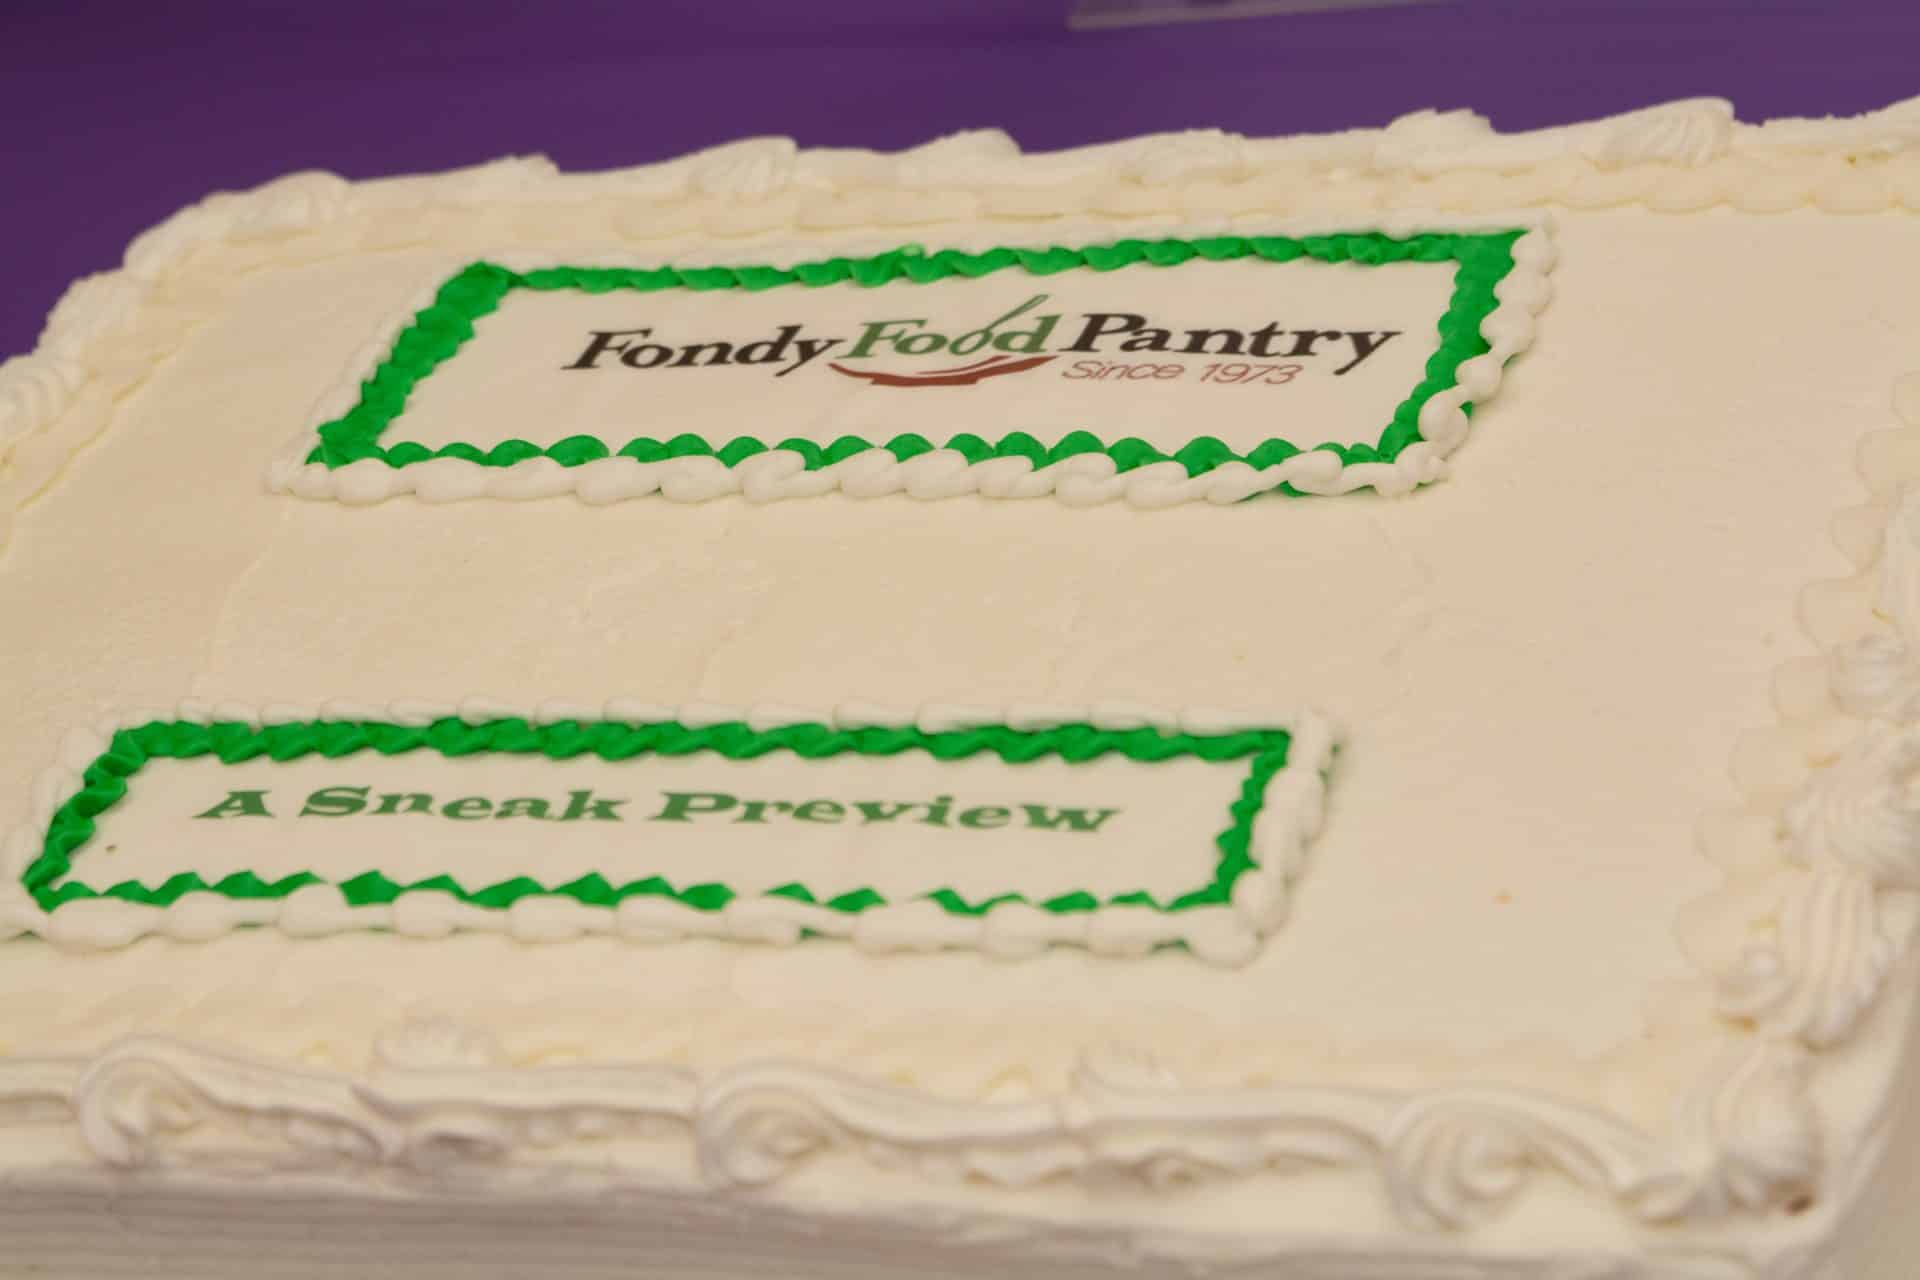 A Sneak Preview Event on May 10 for the new Fondy Food Pantry was planned by Moraine Park Technical College students.